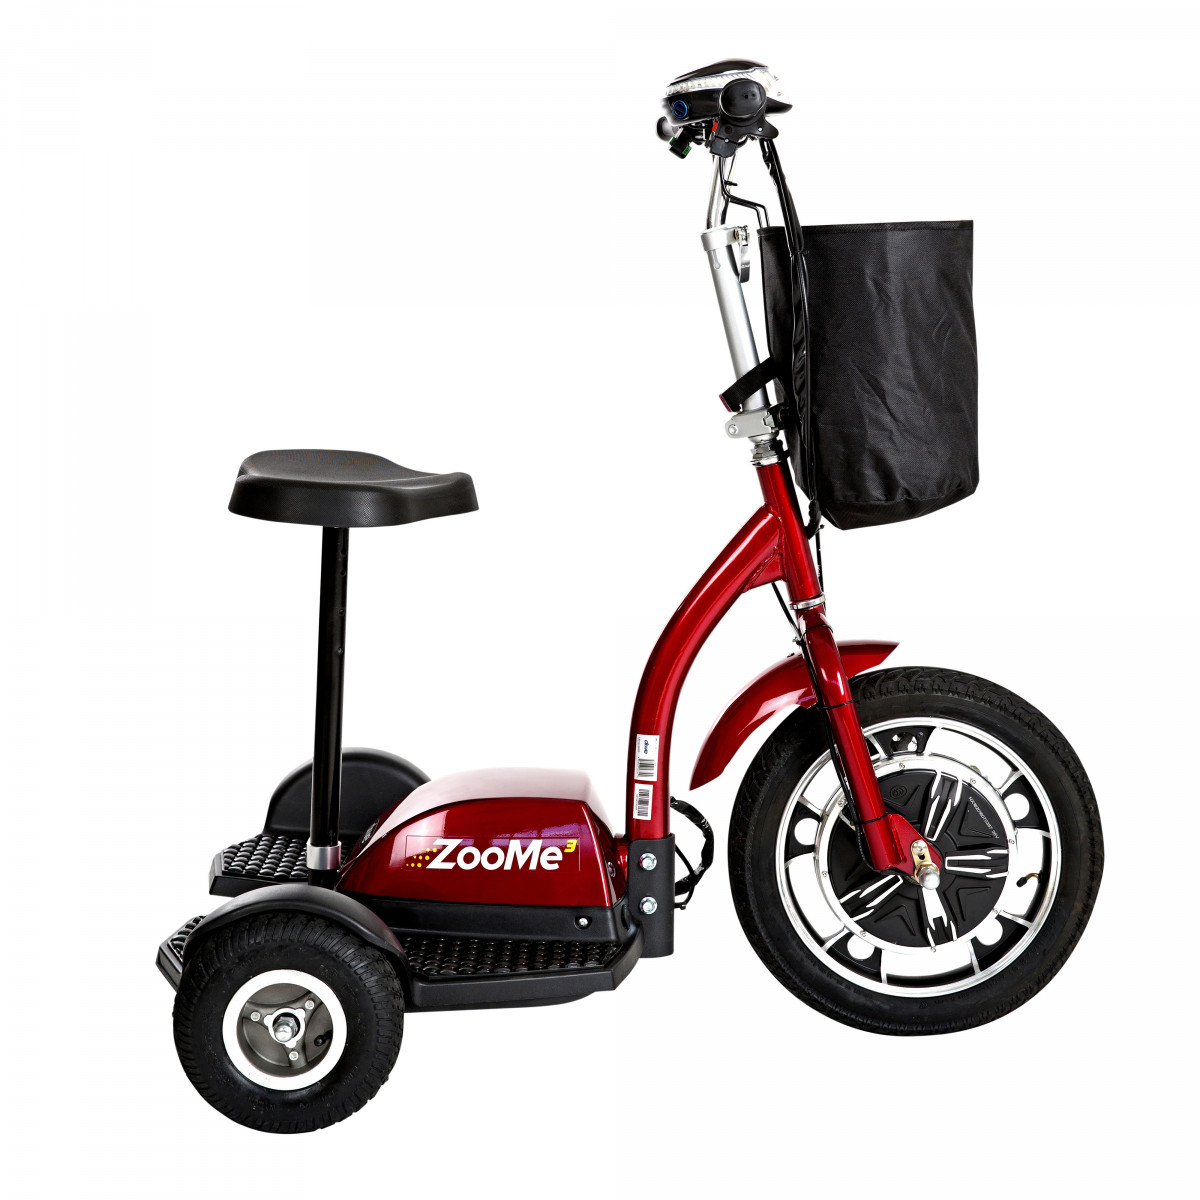 zoome 3 wheel recreational scooter e7c